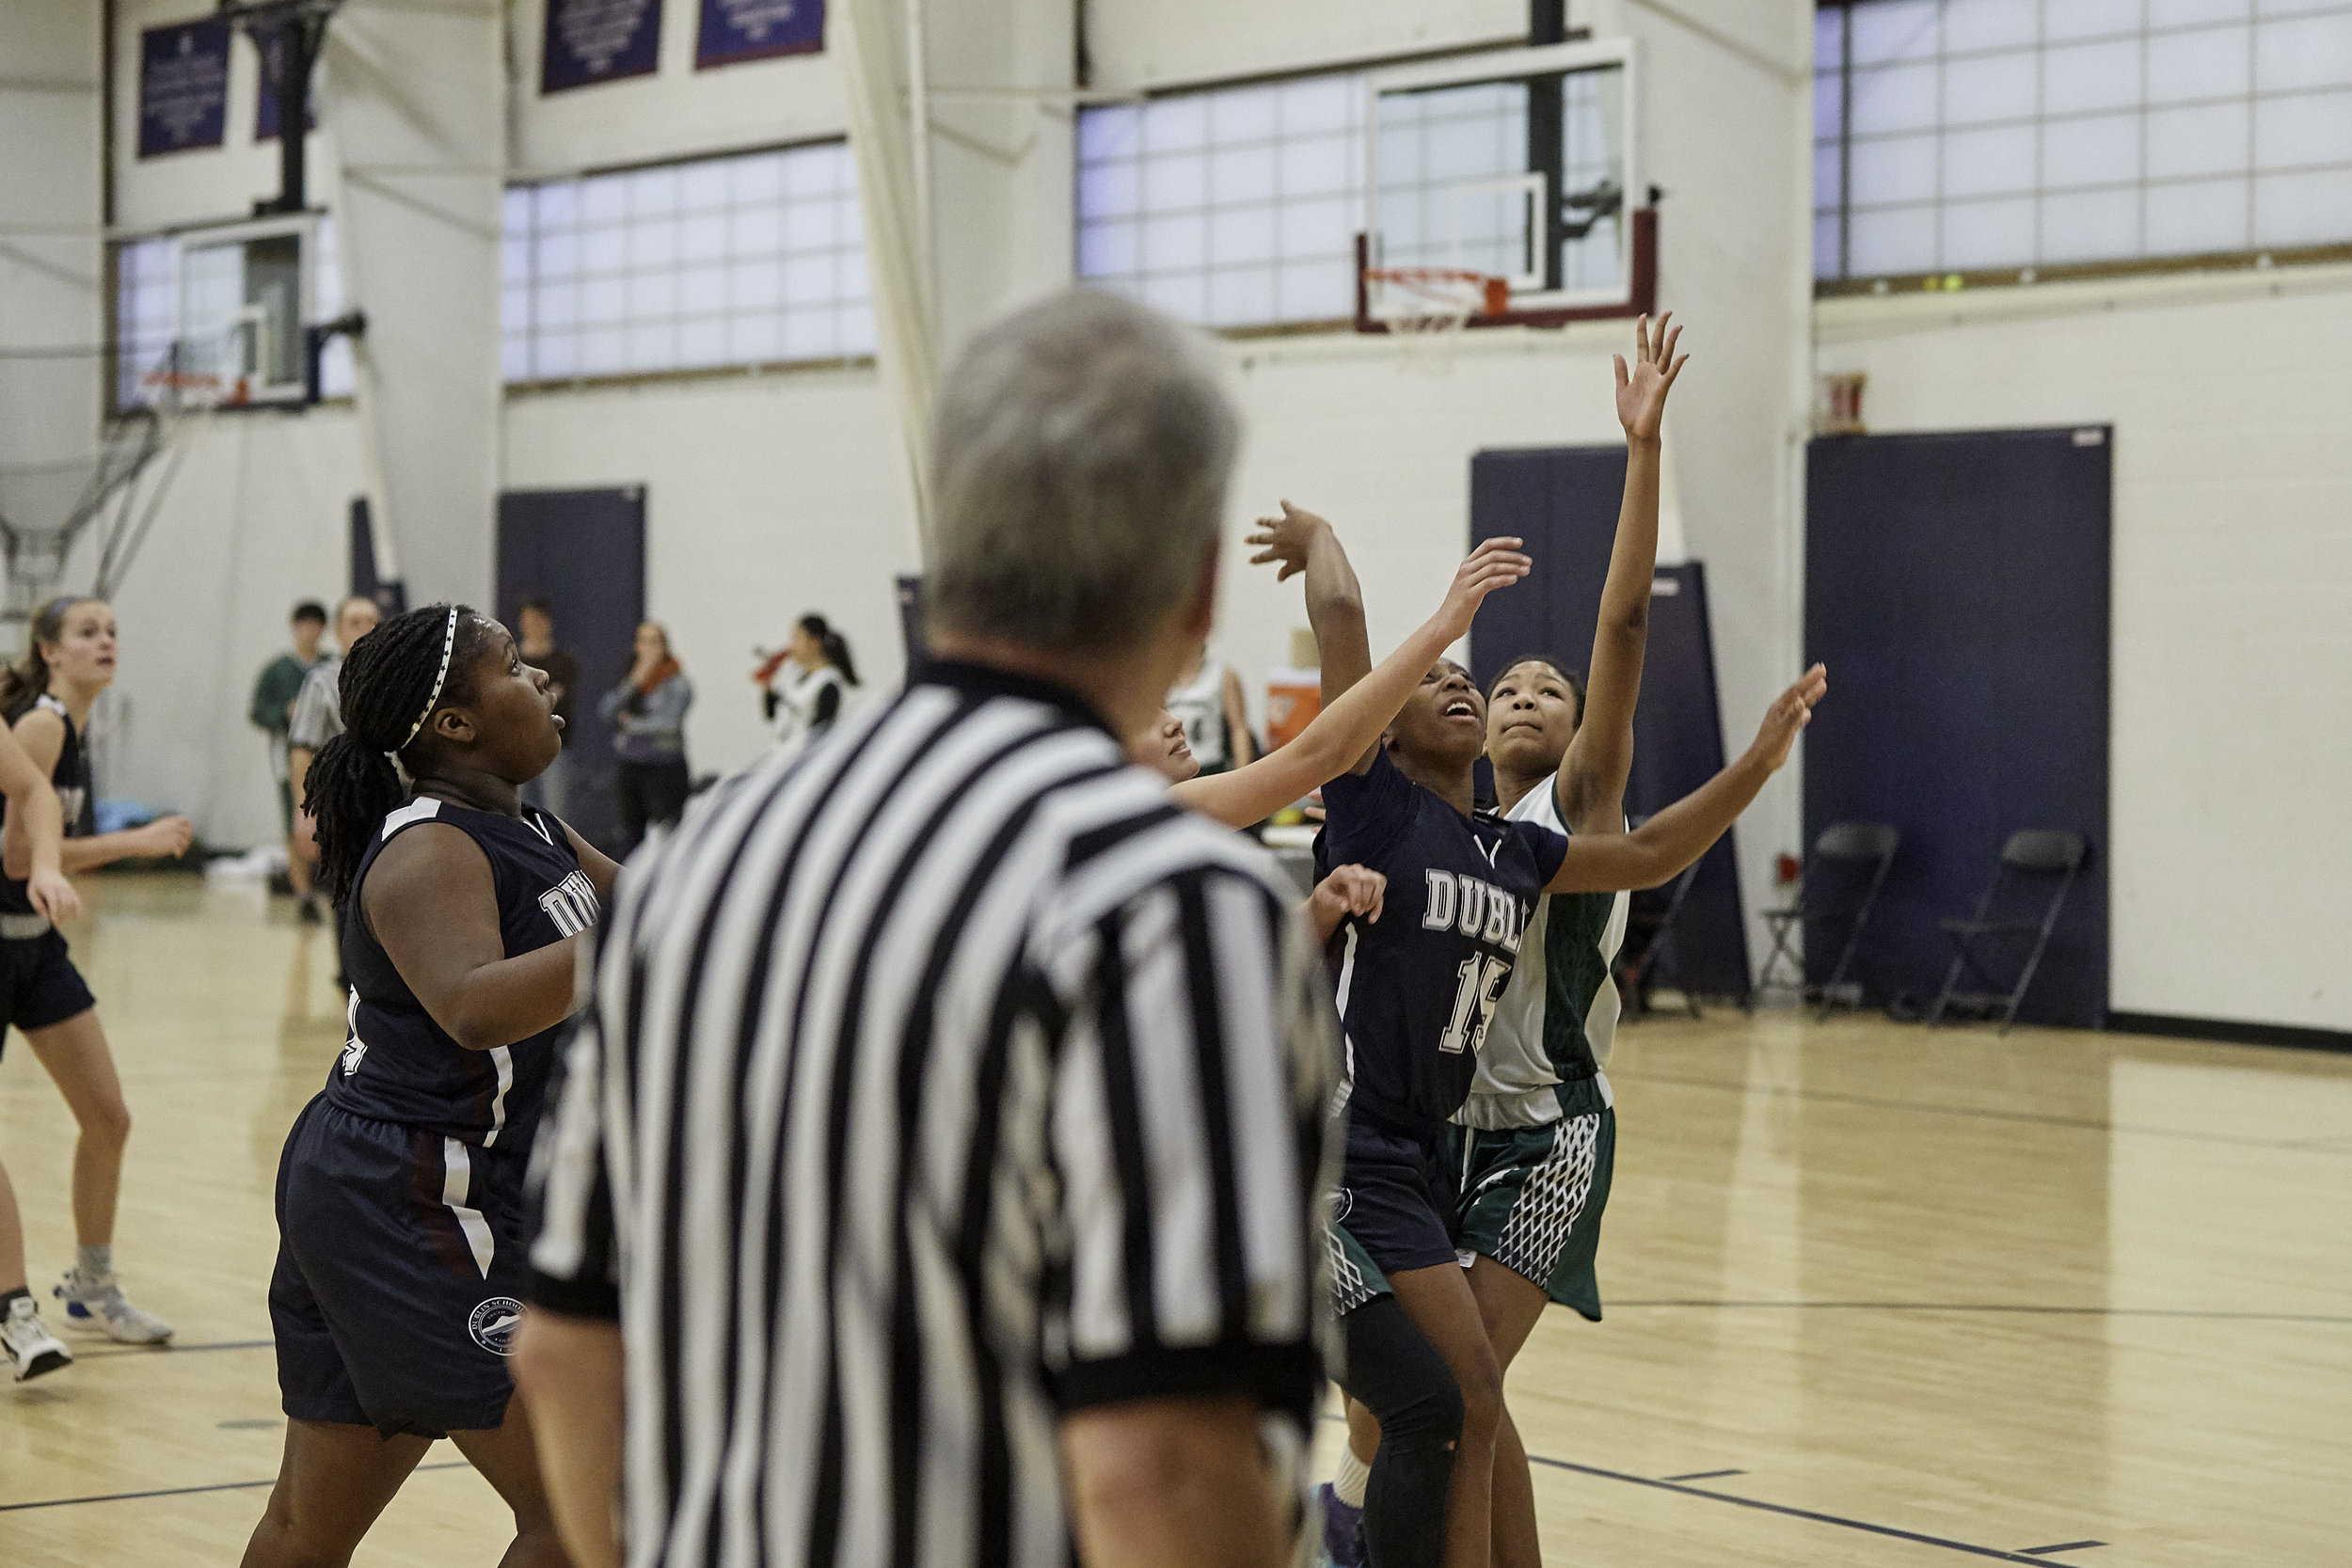 Basketball vs Putney School, February 9, 2019 - 167546.jpg